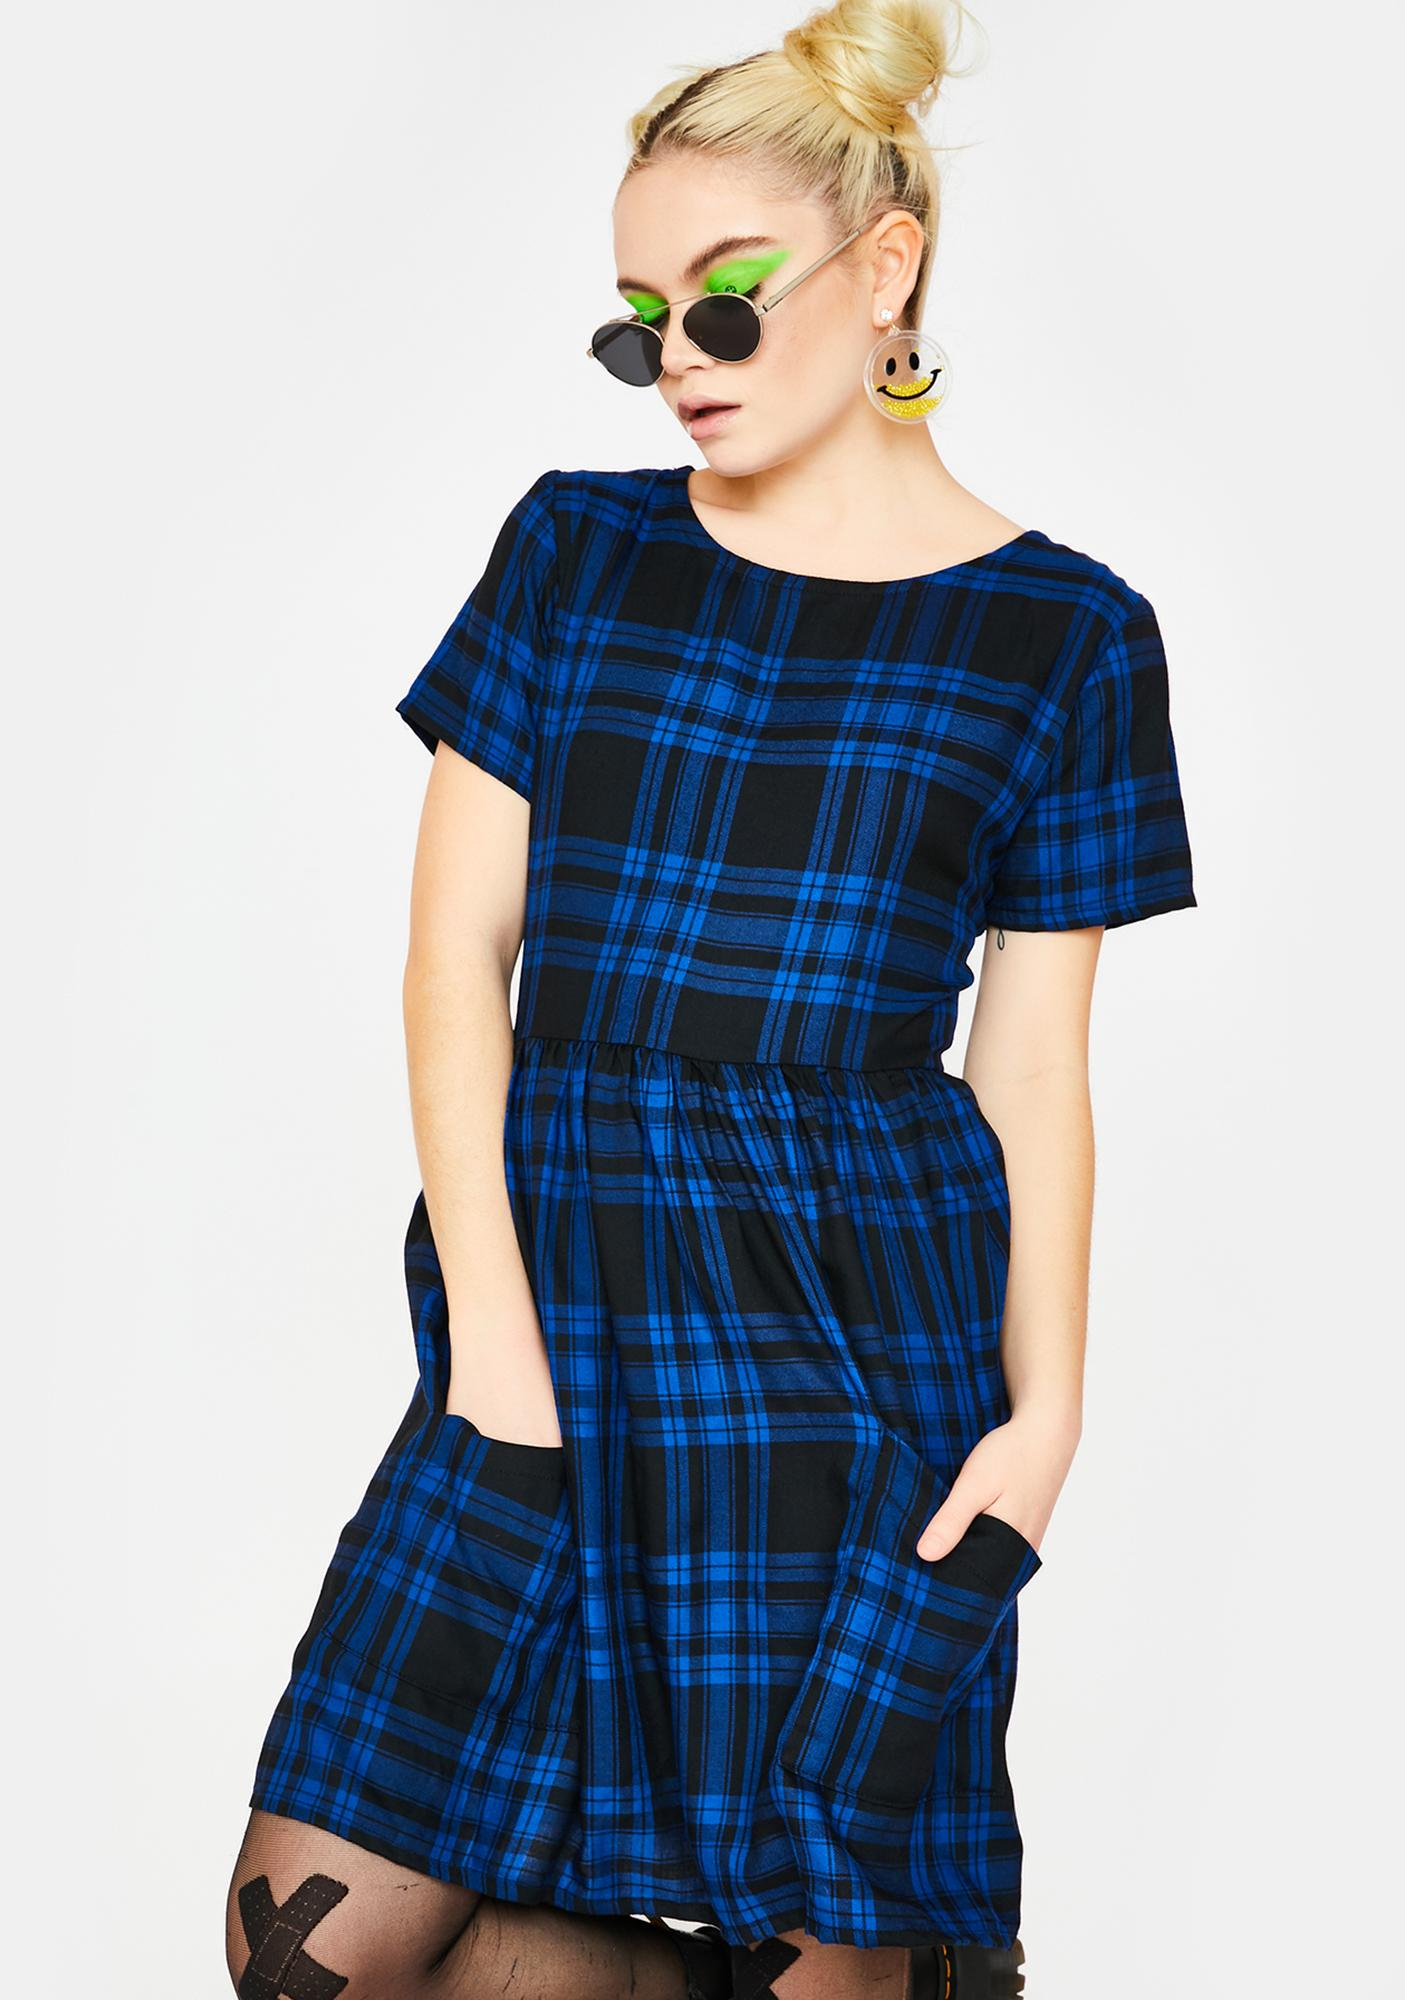 Tallulah's Threads Checked Out Tartan Dress